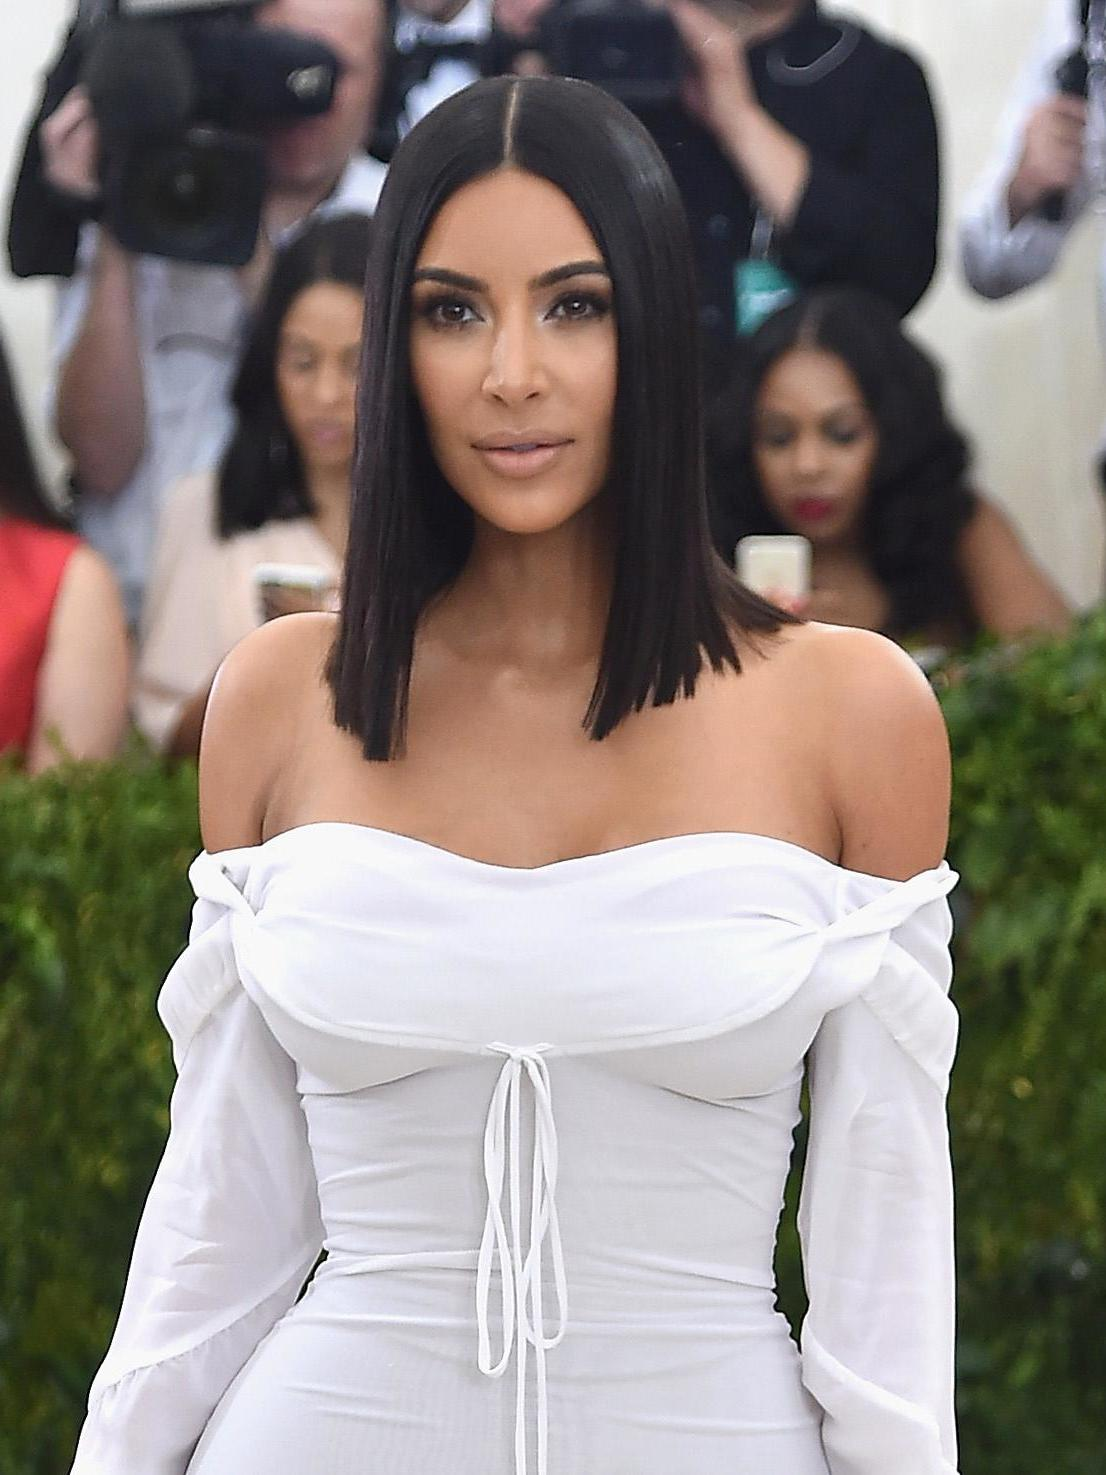 Kim Kardashian Tells All About Her 4M Ring Stolen atGunpoint Kim Kardashian Tells All About Her 4M Ring Stolen atGunpoint new images